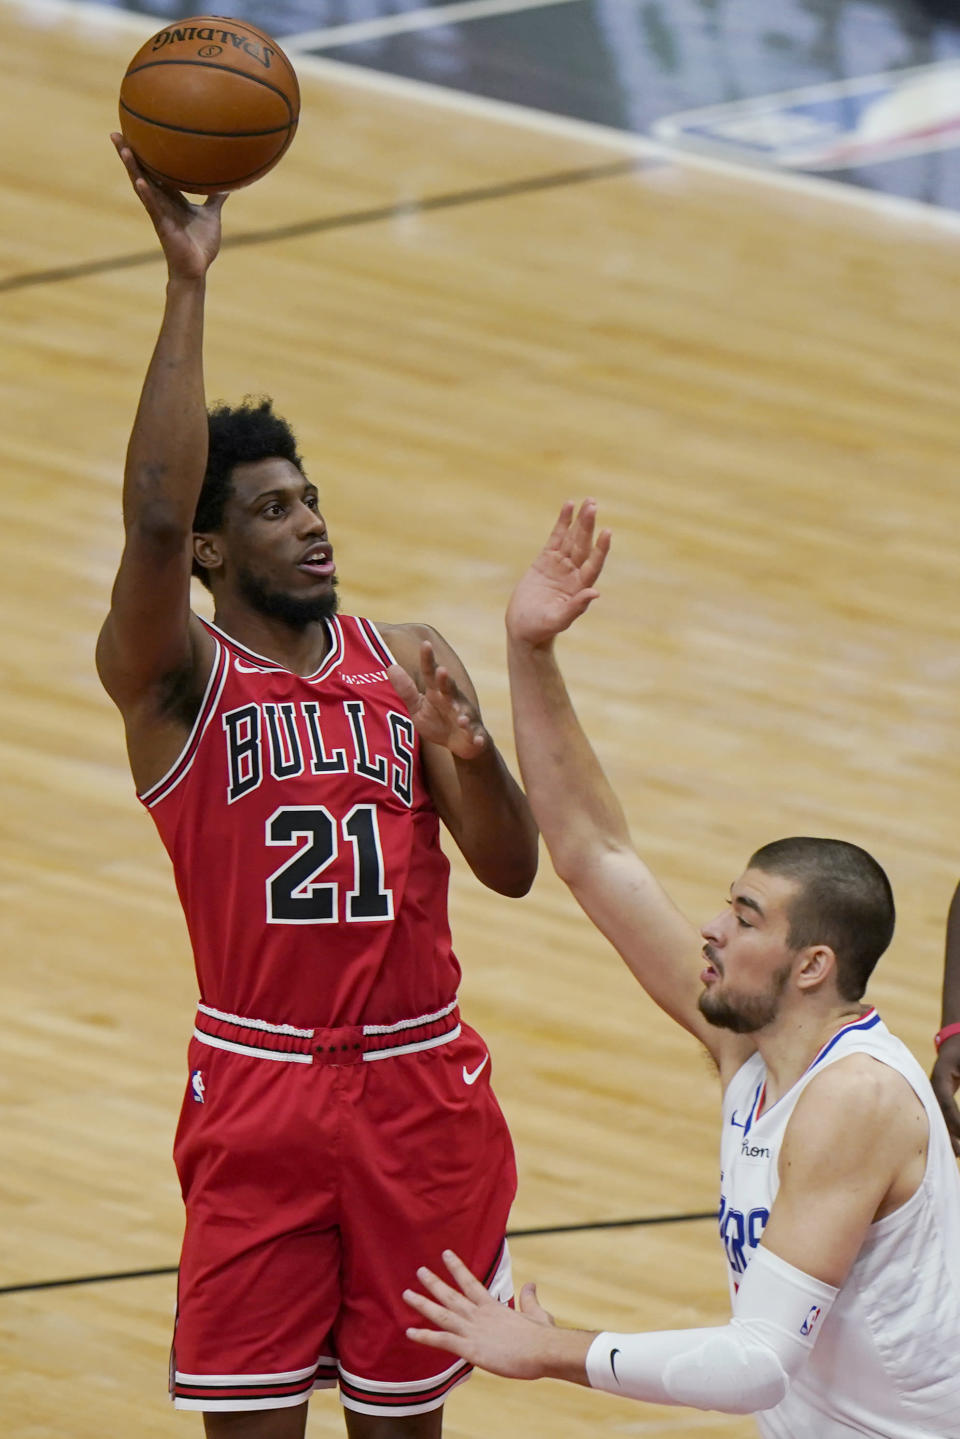 Chicago Bulls forward Thaddeus Young, left, shoots against Los Angeles Clippers center Ivica Zubac during the first half of an NBA basketball game in Chicago, Friday, Feb. 12, 2021. (AP Photo/Nam Y. Huh)